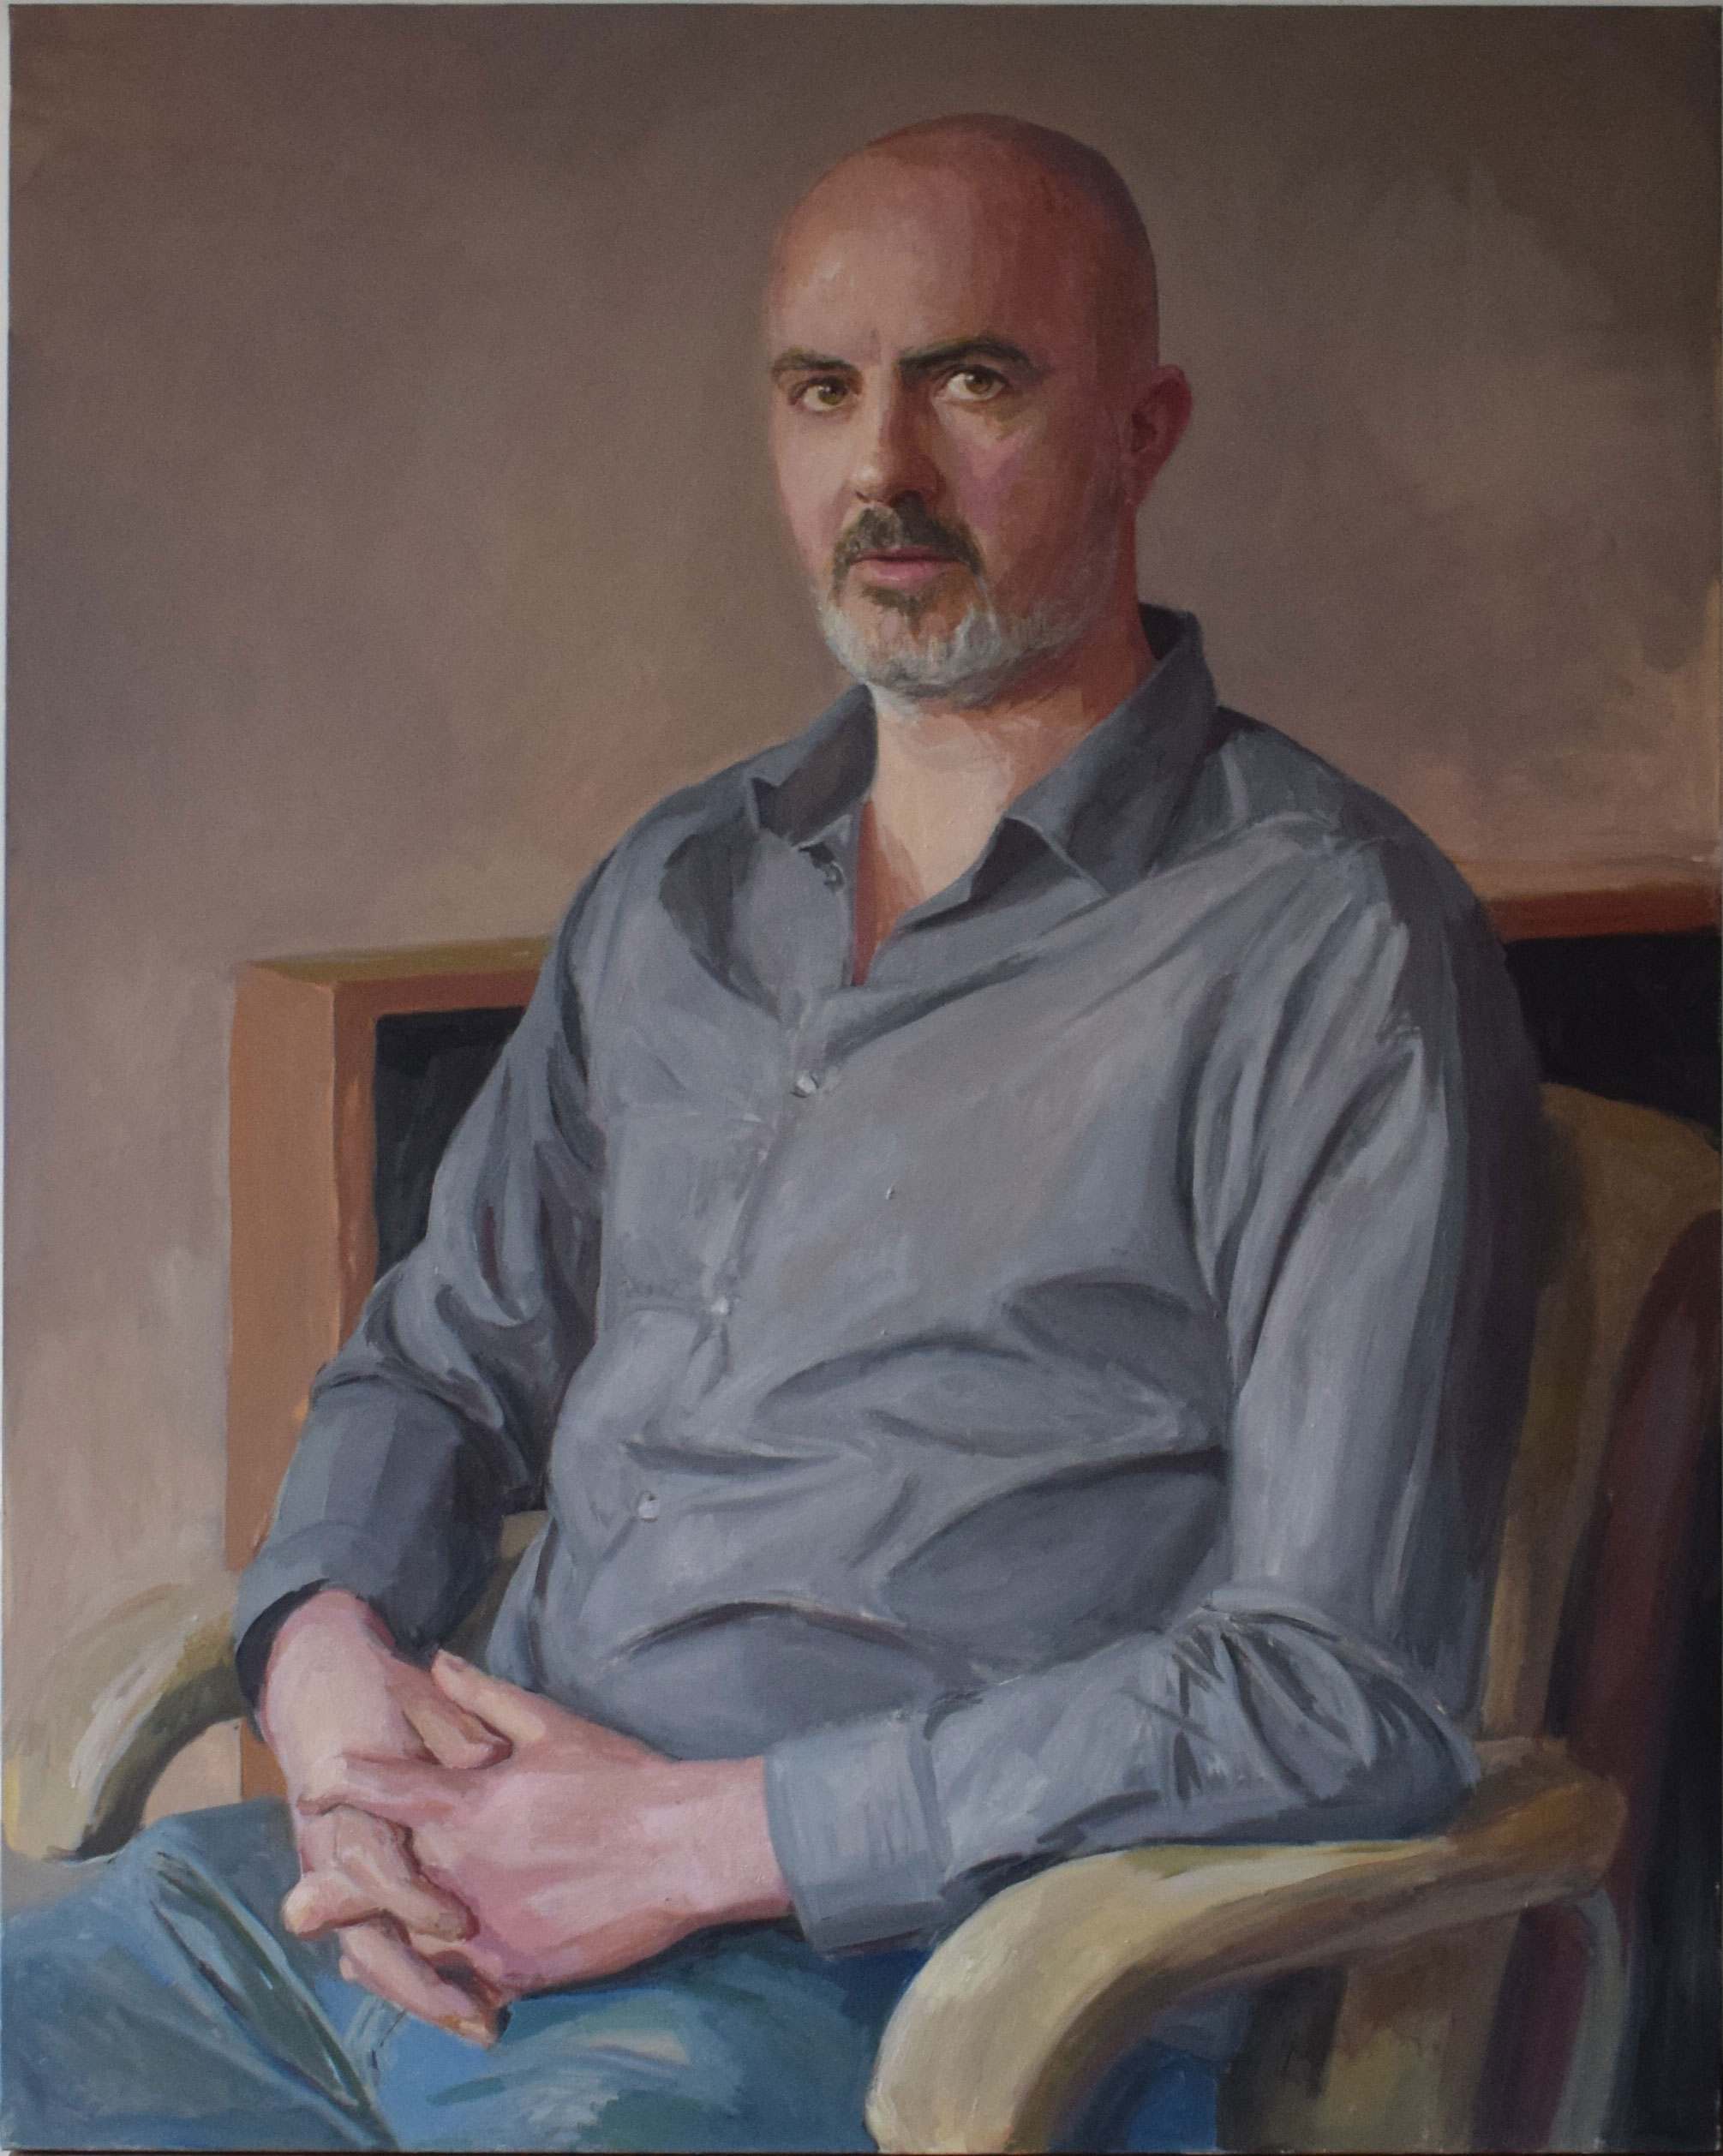 Hero Johnson, portrait of the artist Carl Randall